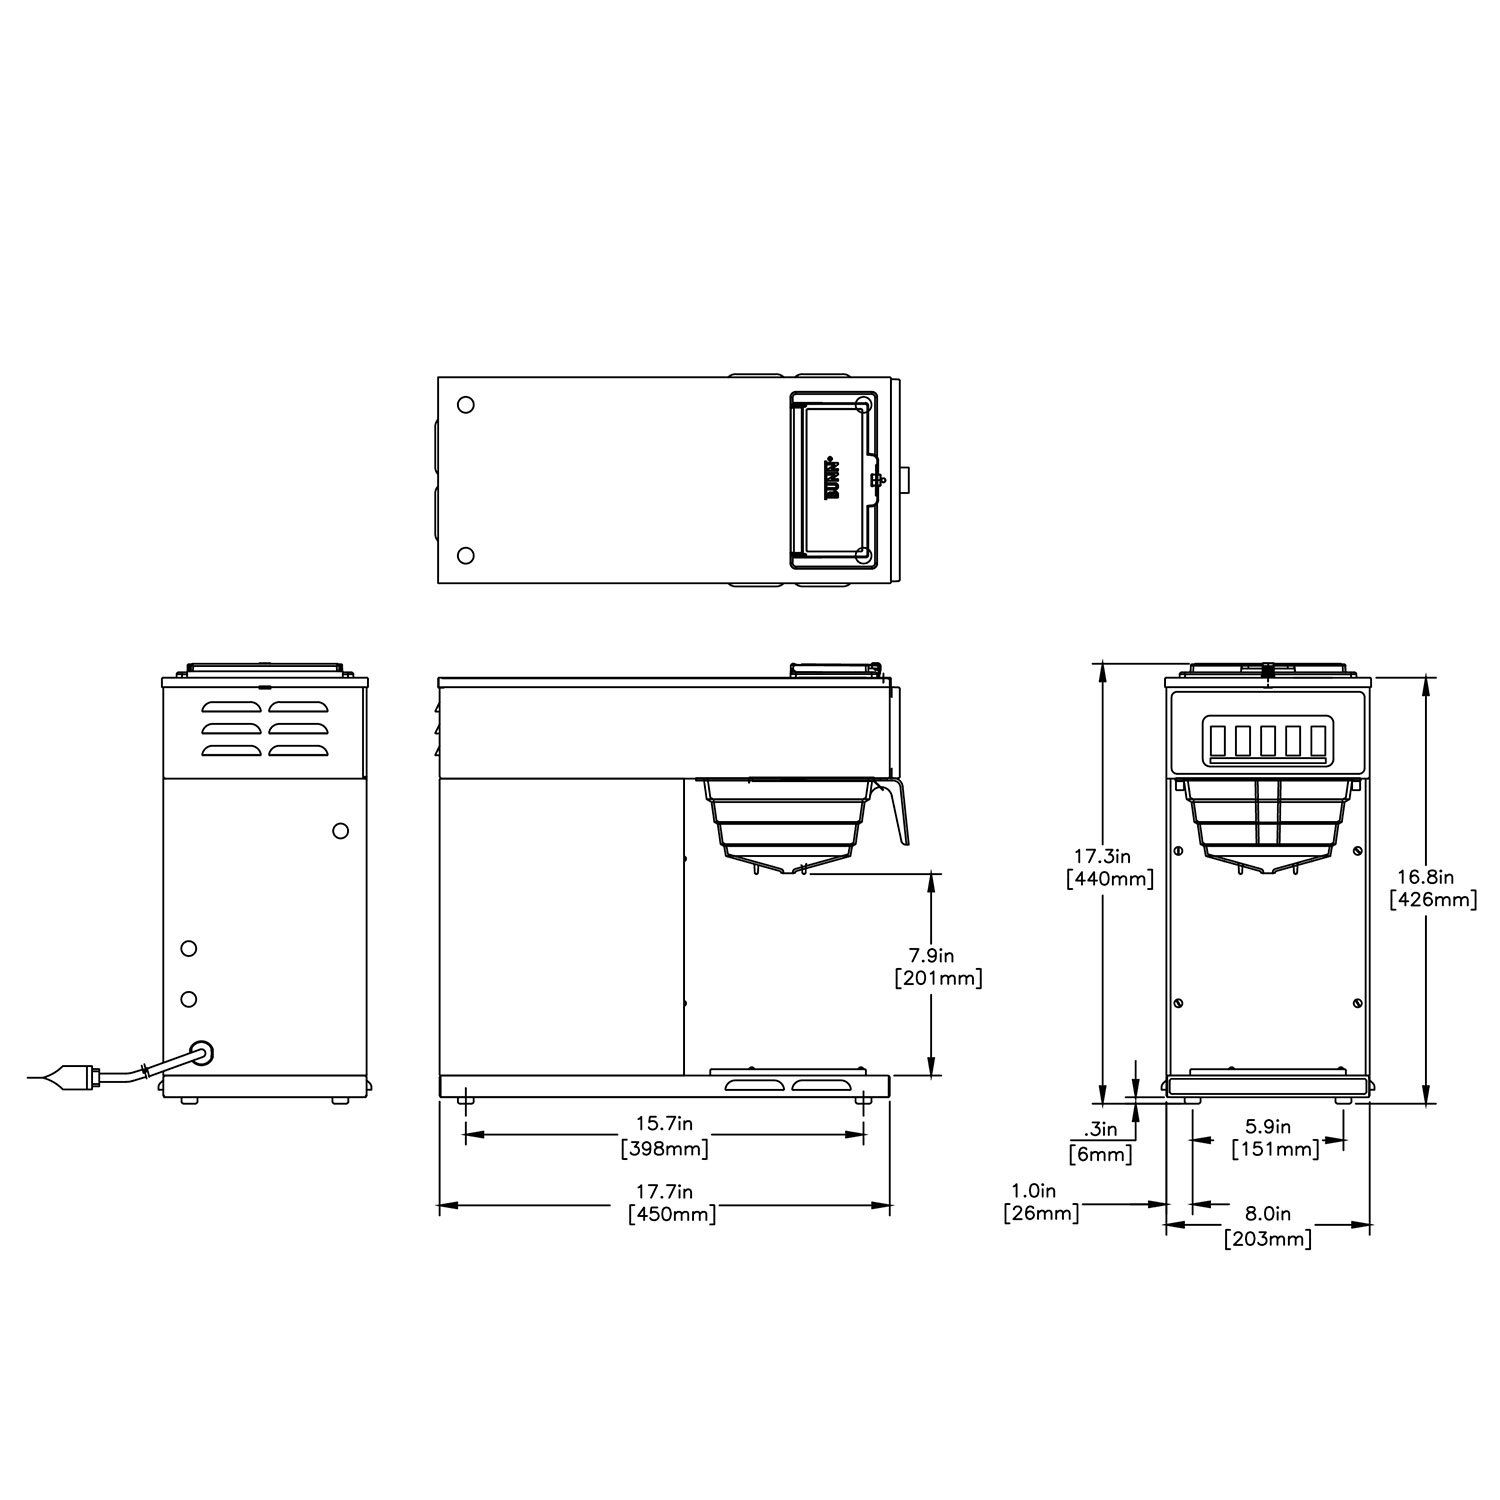 Bunn Commercial Coffee Maker Vp17 1 Pourover Stainless Steel Wire Diagrams Warmer 13300 0001 Business Industry Science